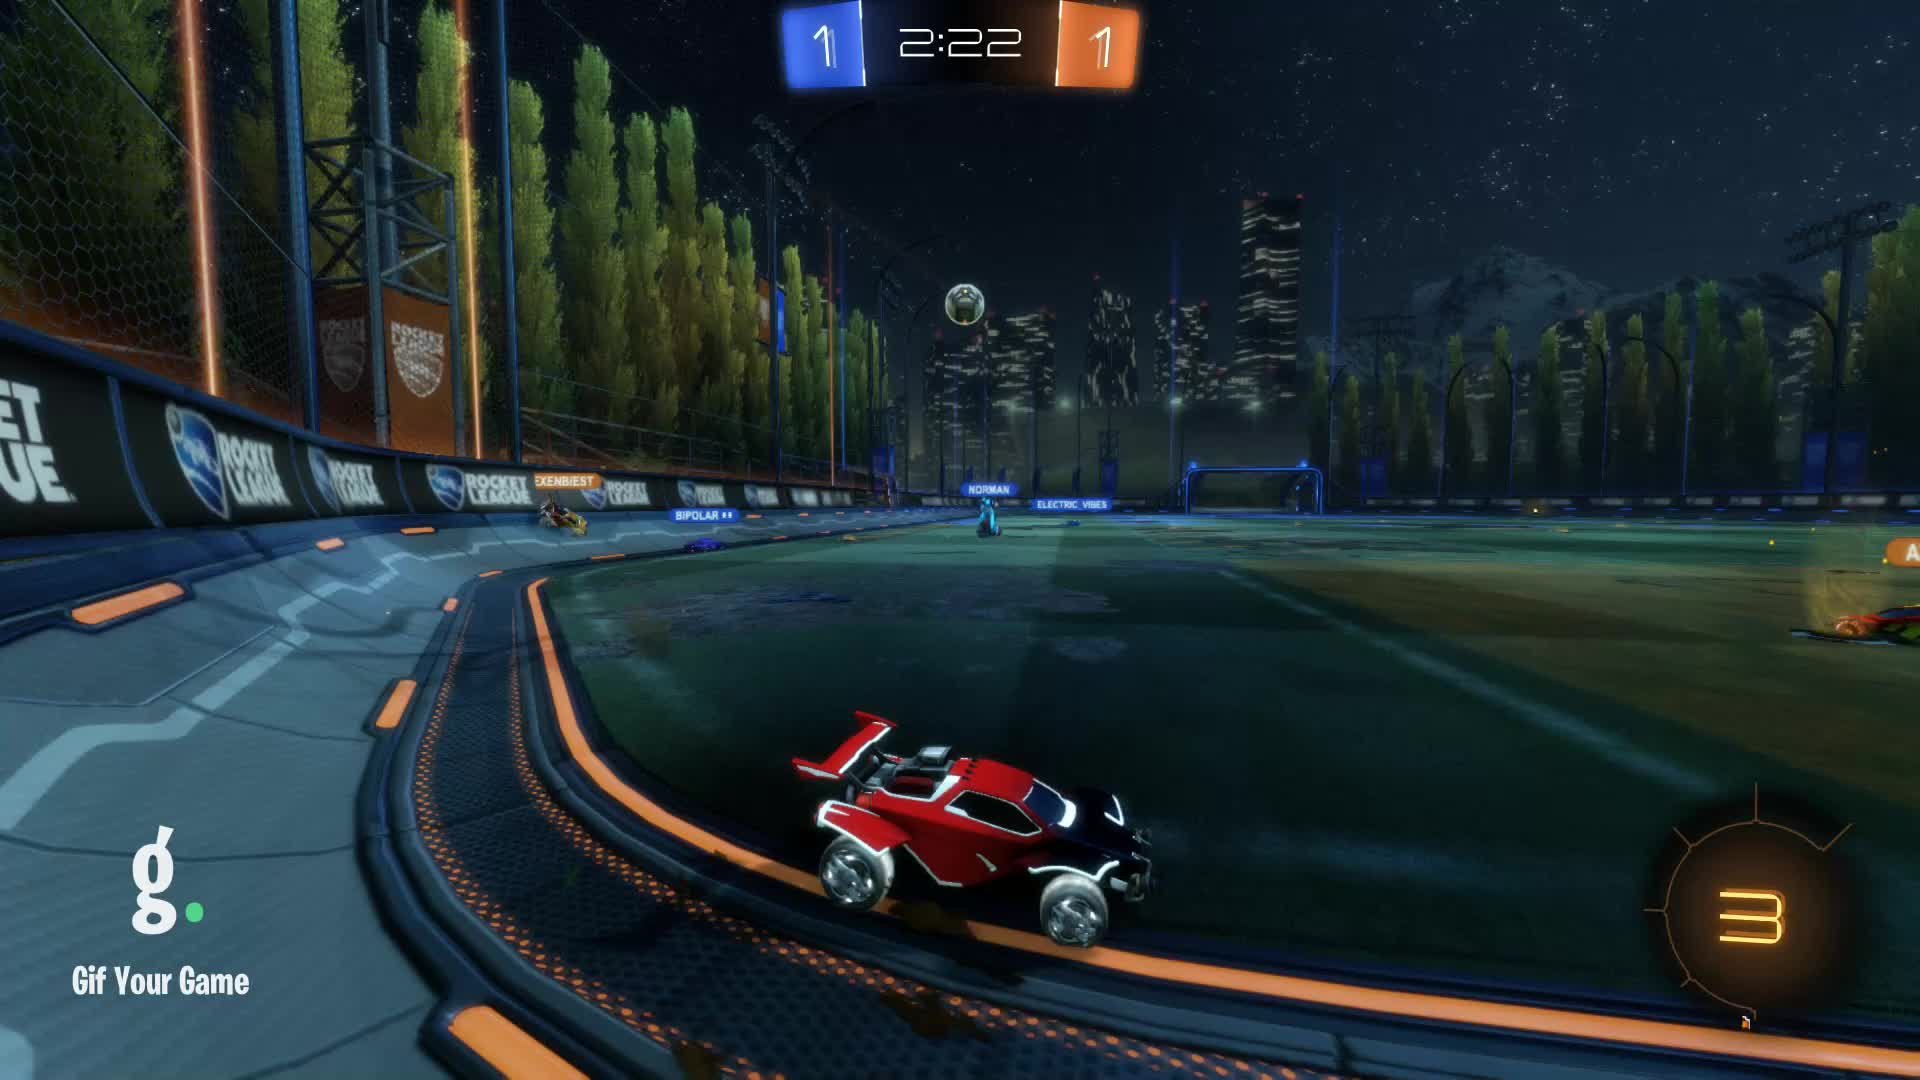 Bhuwant, Gif Your Game, GifYourGame, Goal, Rocket League, RocketLeague, Goal 3: Bipolar 双極 GIFs